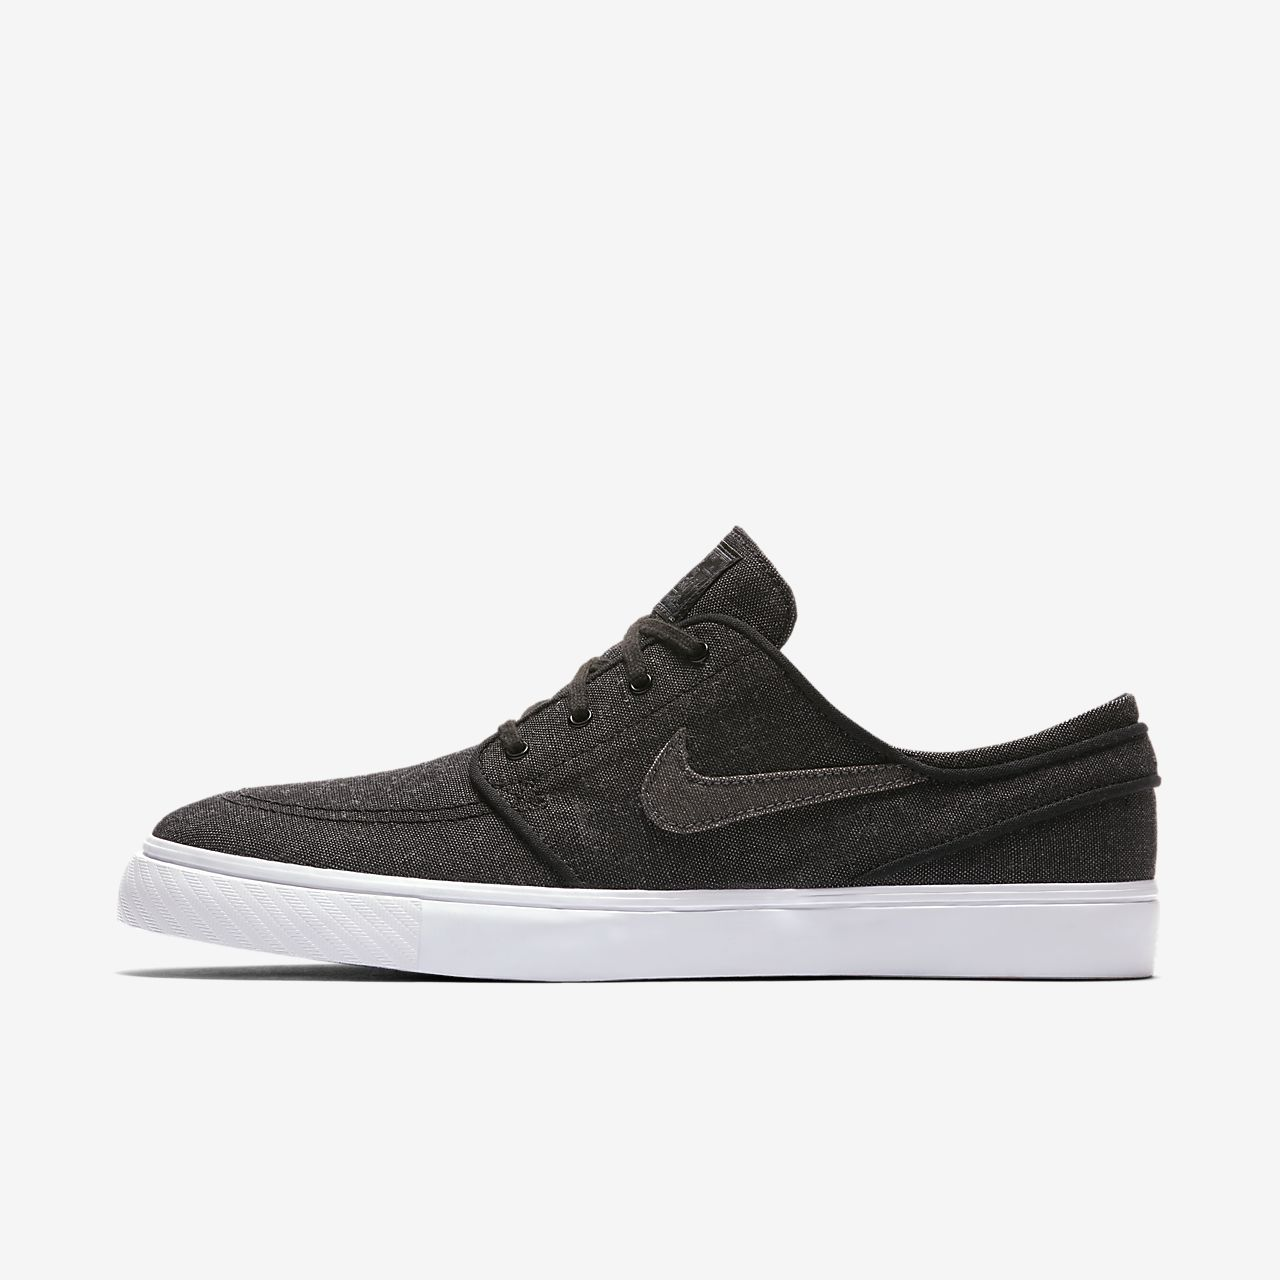 Nike SB Zoom Stefan Janoski Boys Skateboarding Shoes Blue/Black/White pI3445C